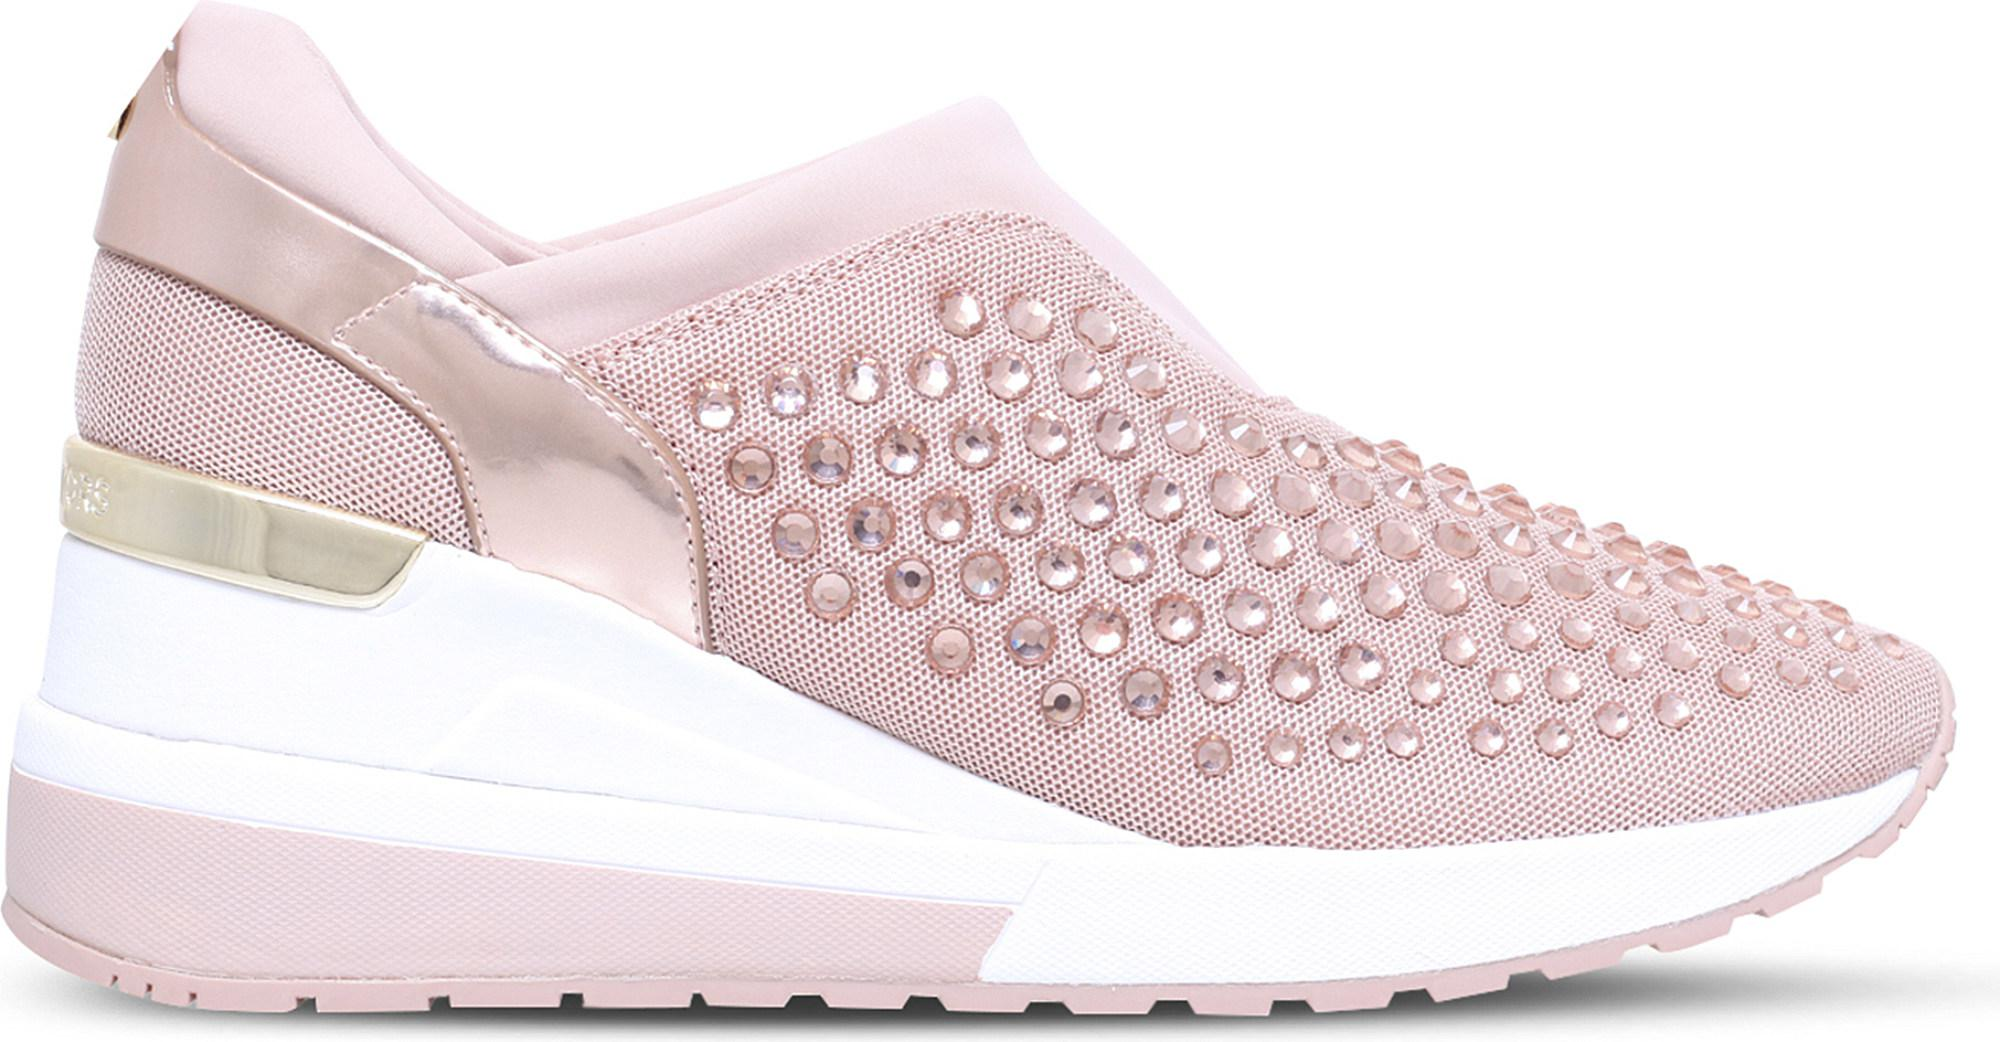 Discount Michael Michael Kors Pale Pink Maloy Textile And Patent Leather Trainers for Women Sale